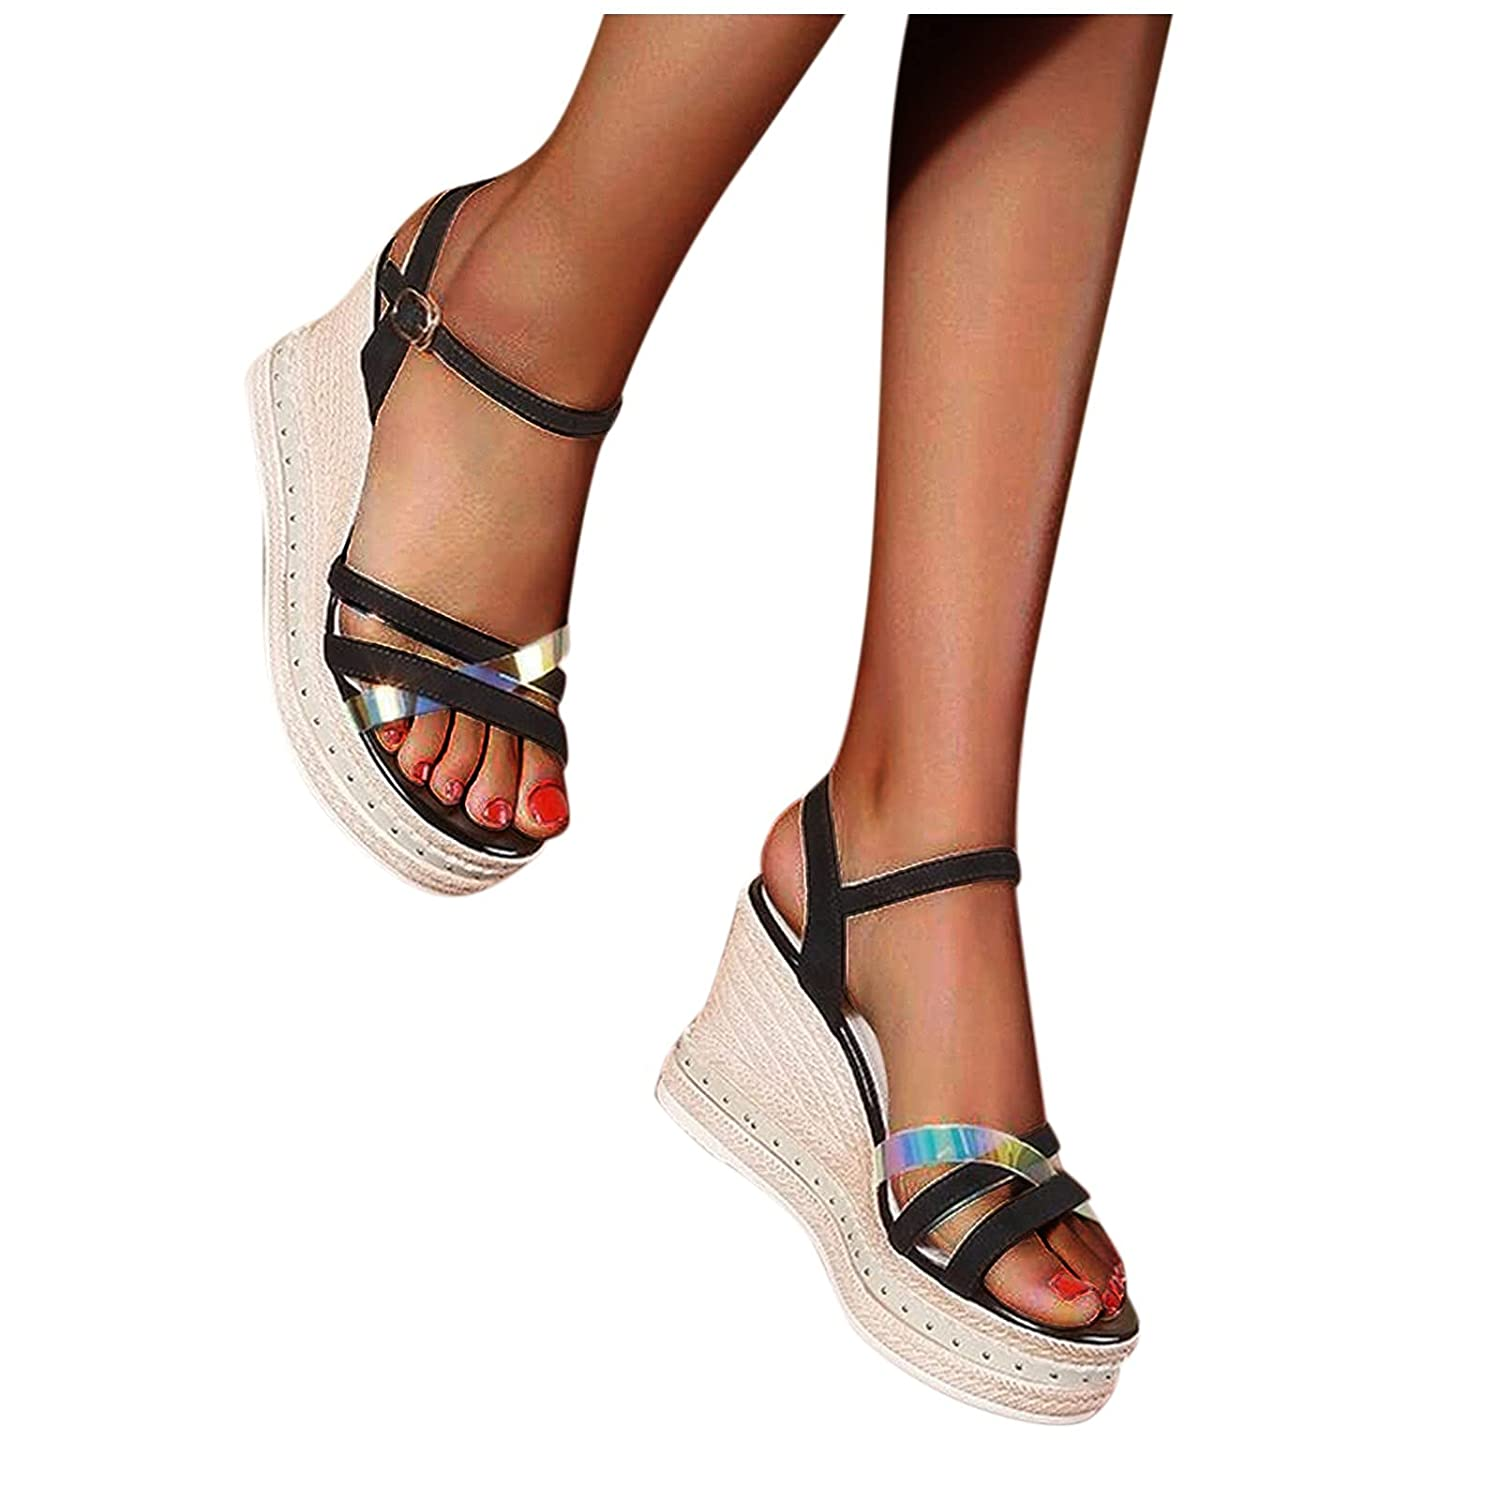 Reokoou Summer Wedge Discount mail order Sandals for Women Dress San Casual Open All items free shipping Toe